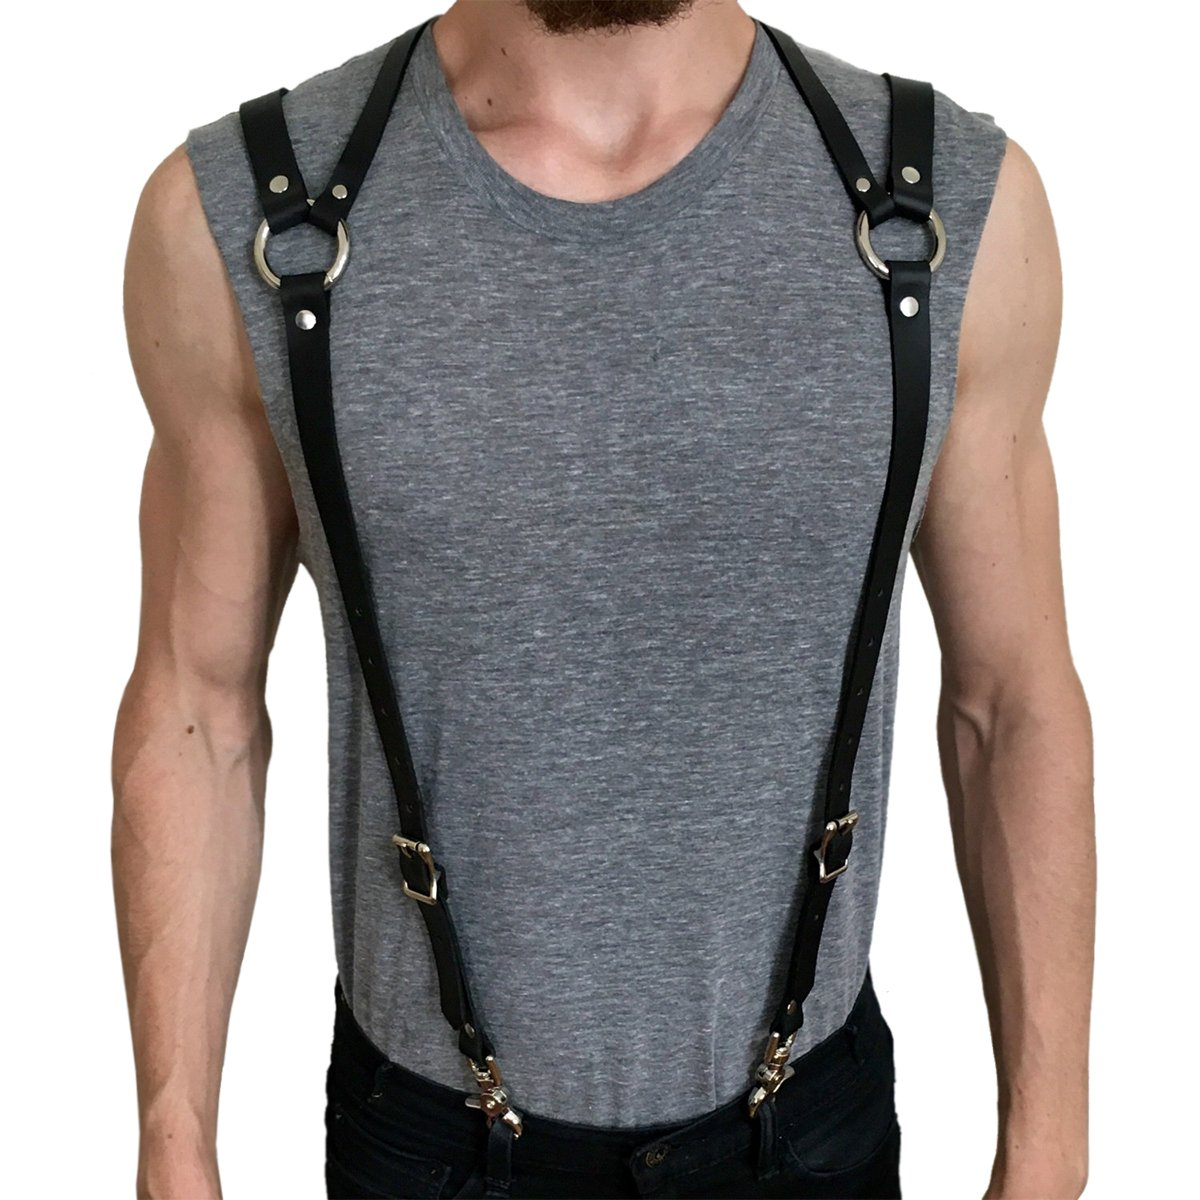 Homelex Men's Black Leather Punk Y Suspenders Harness Great For Wedding & Party (LM-021)